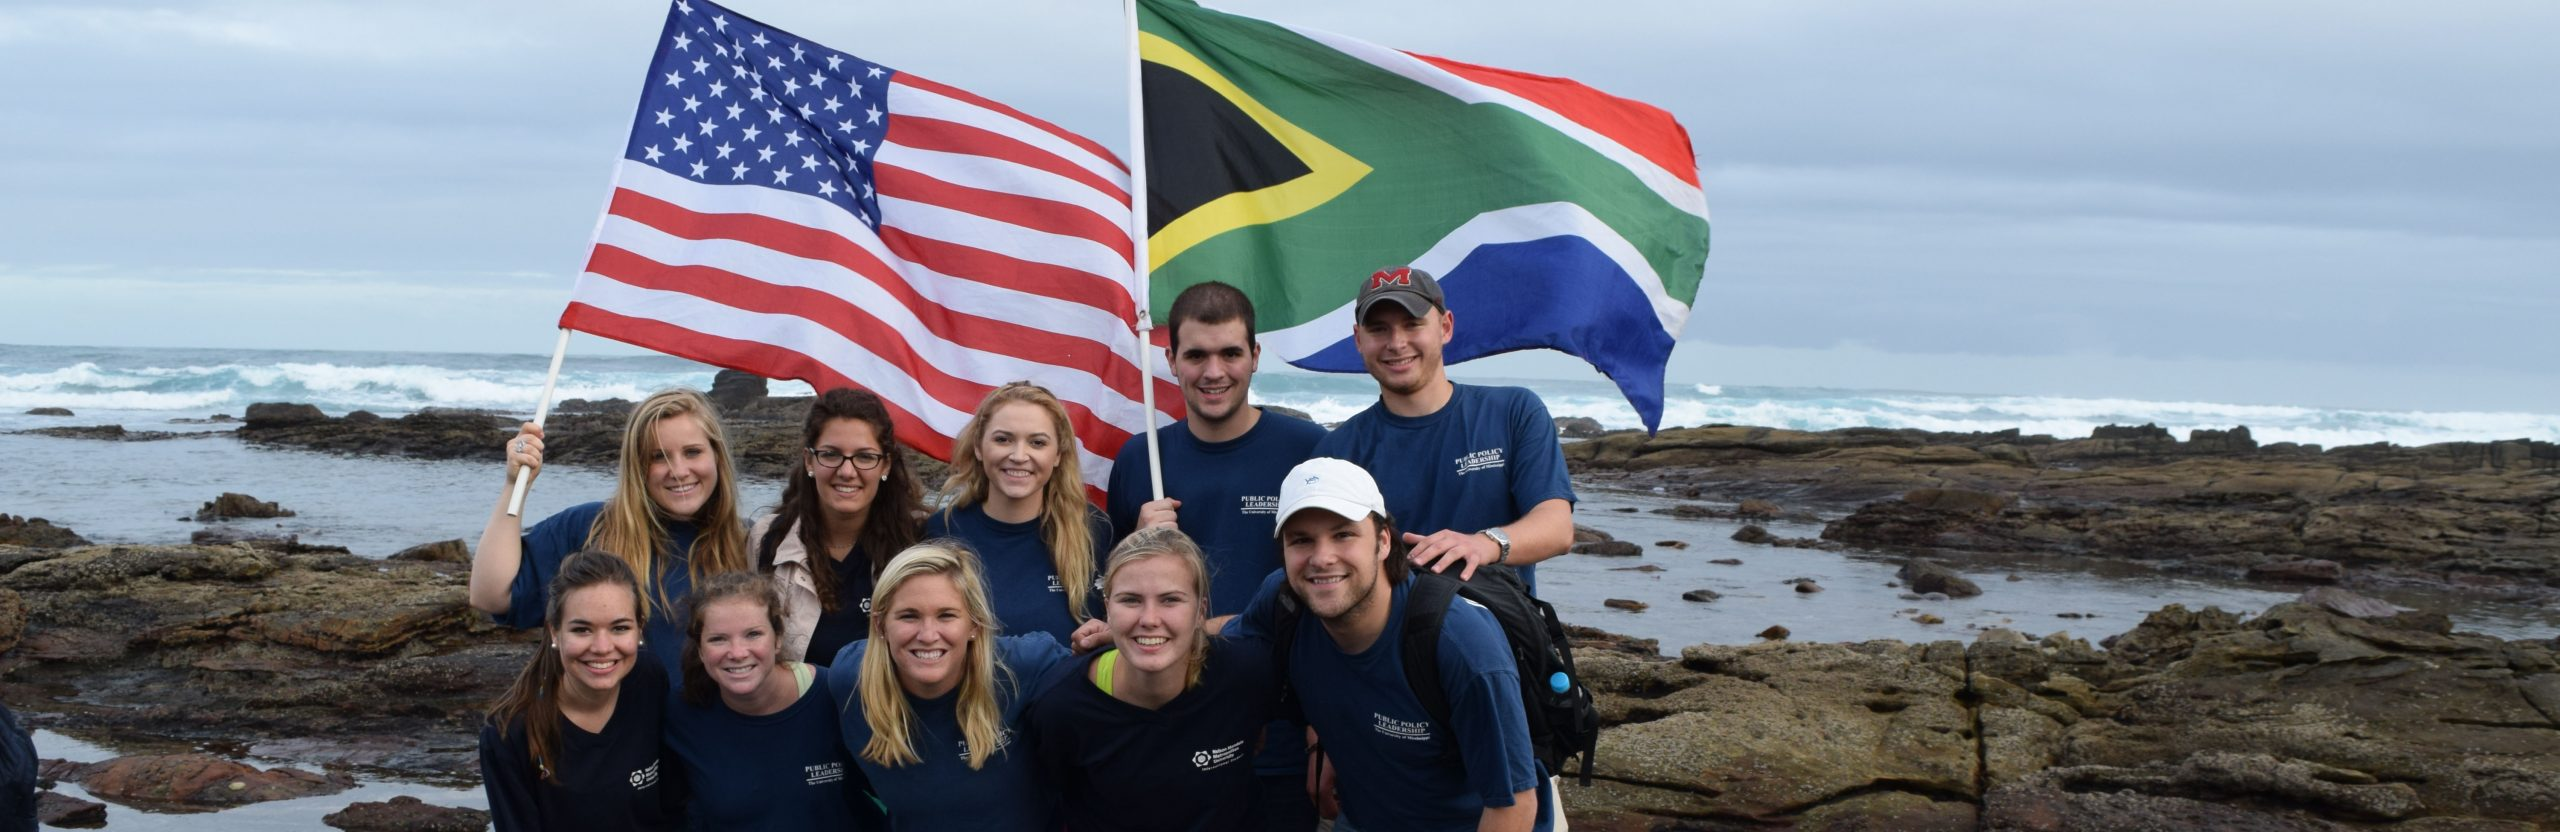 Students hold American and South African flags while studying abroad in South Africa